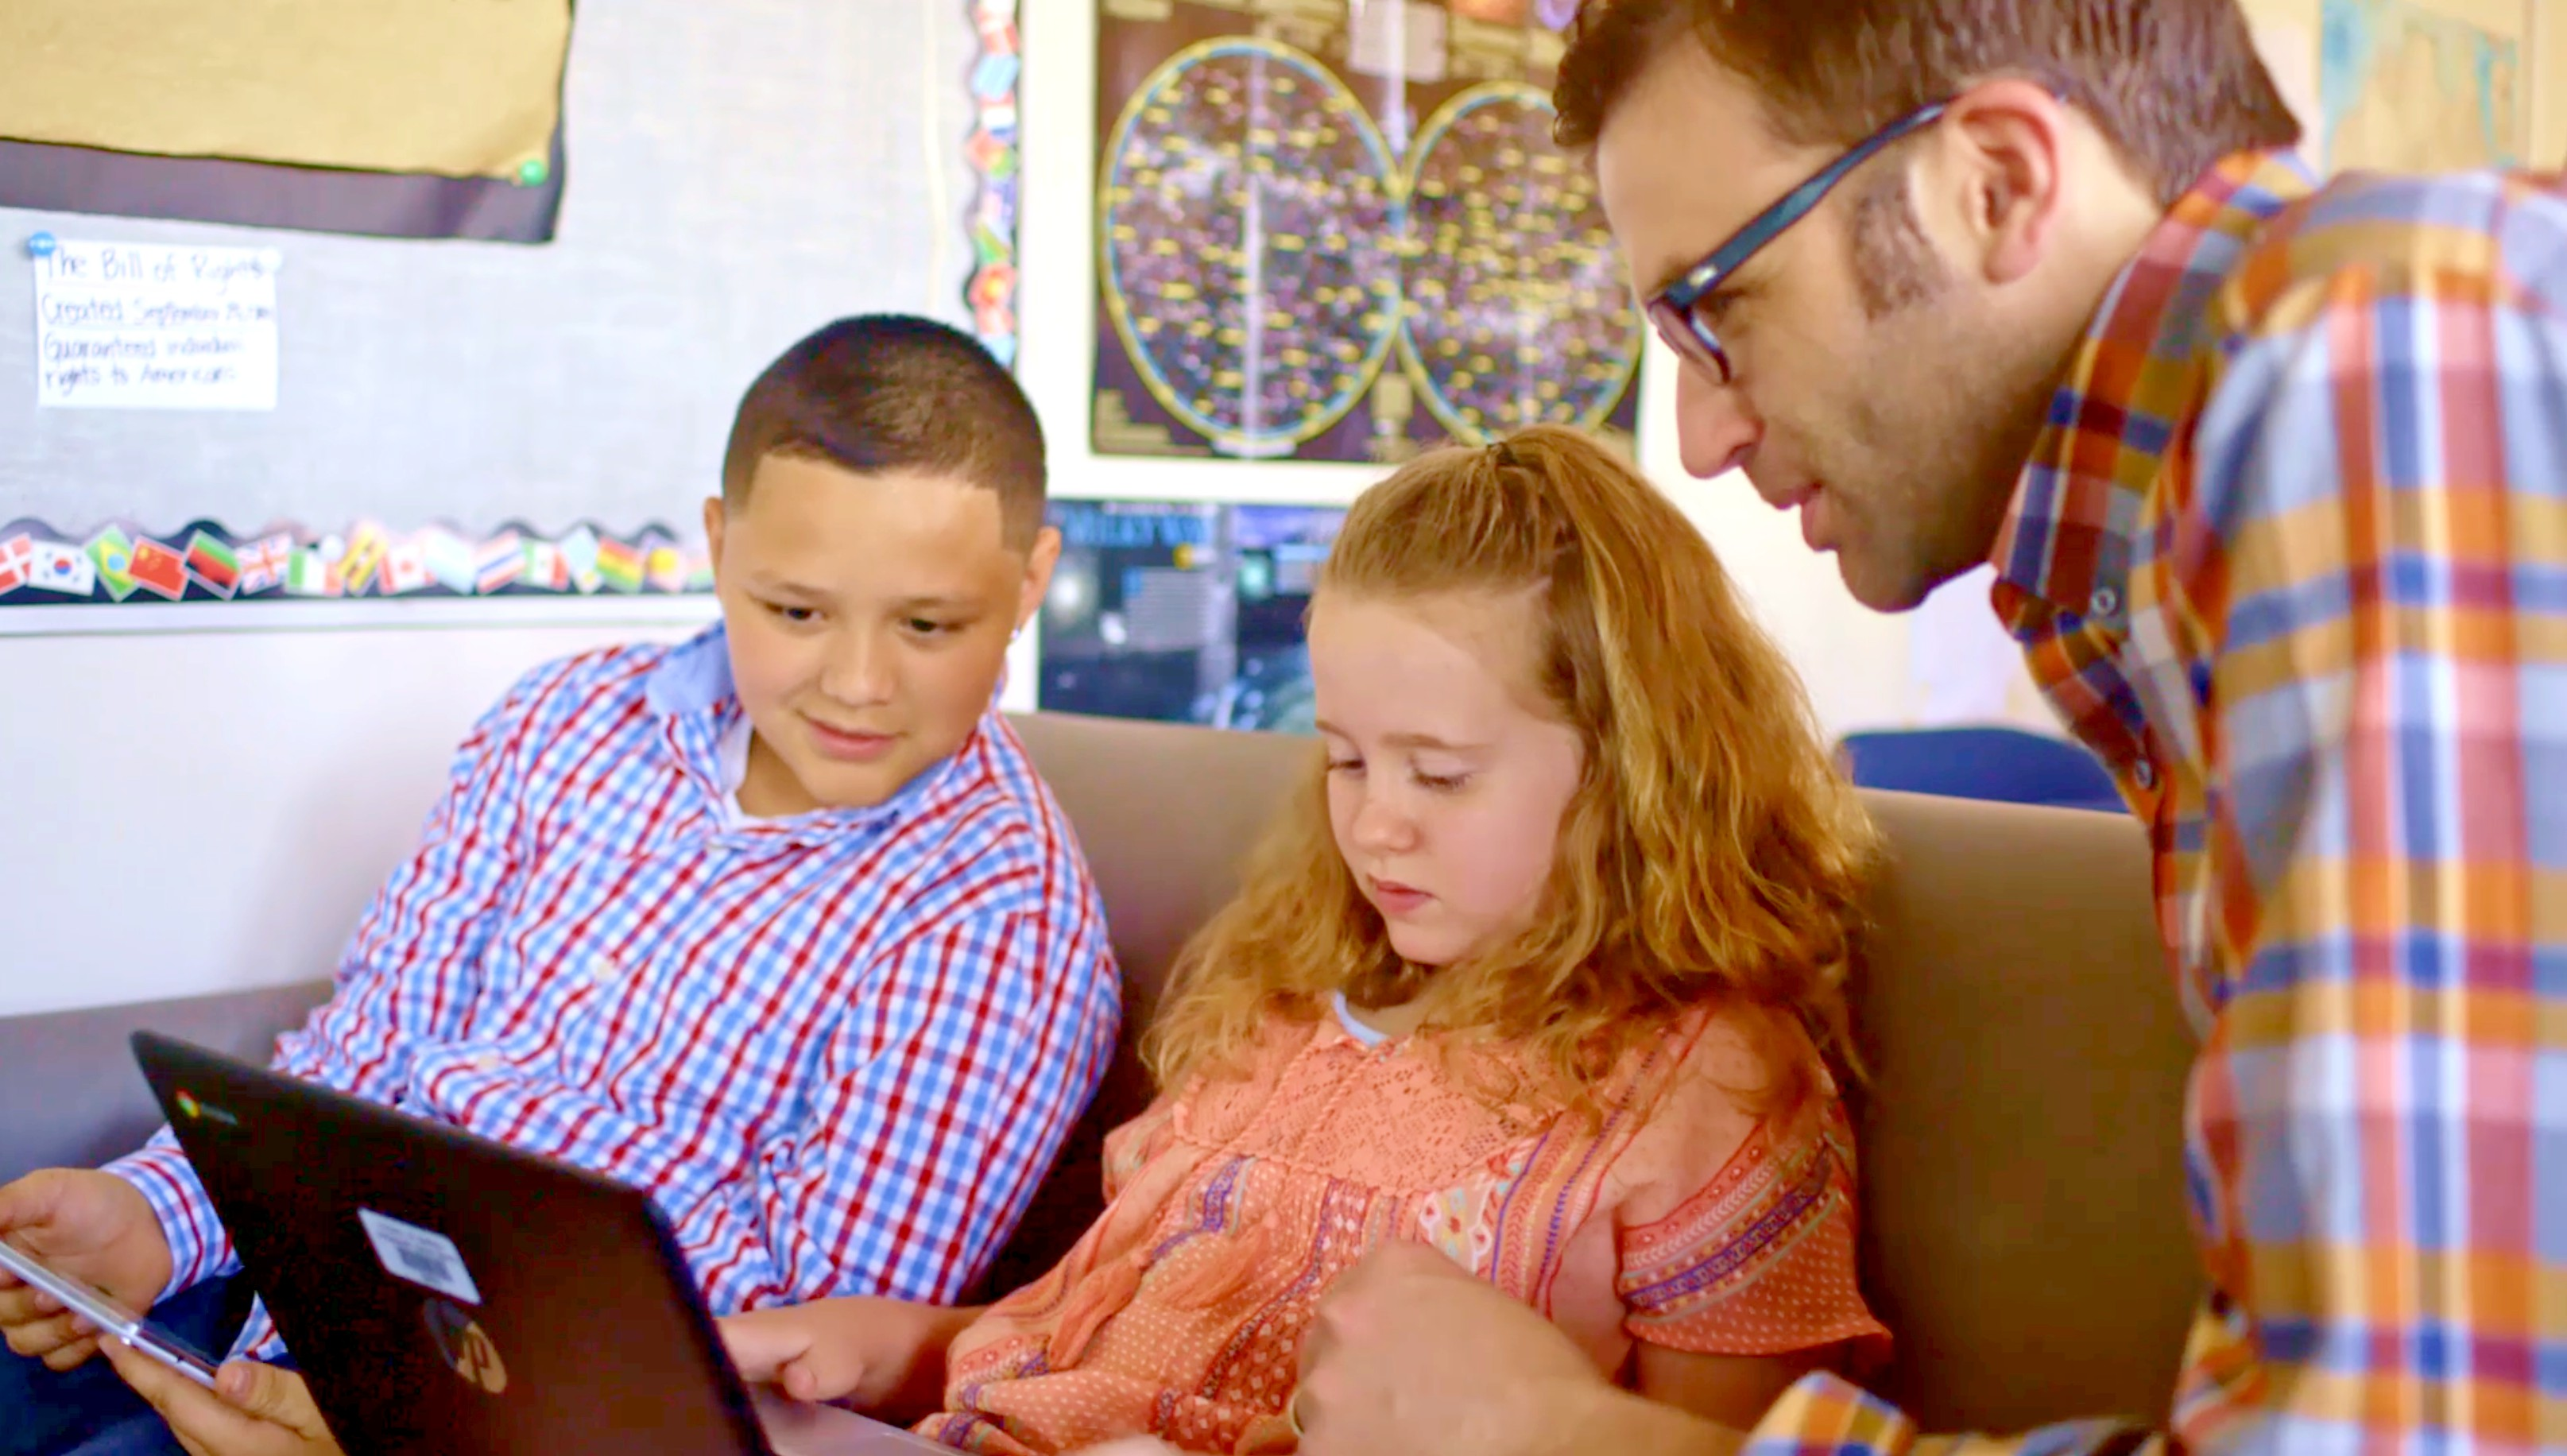 October is National Bullying Prevention Month and I'm happy to share with you about Be Internet Awesome and teaching kids to show kindness online! Full story @ www.hipmamasplace.com. #BeInternetAwesome #ItsCoolToBeKind #Sponsored